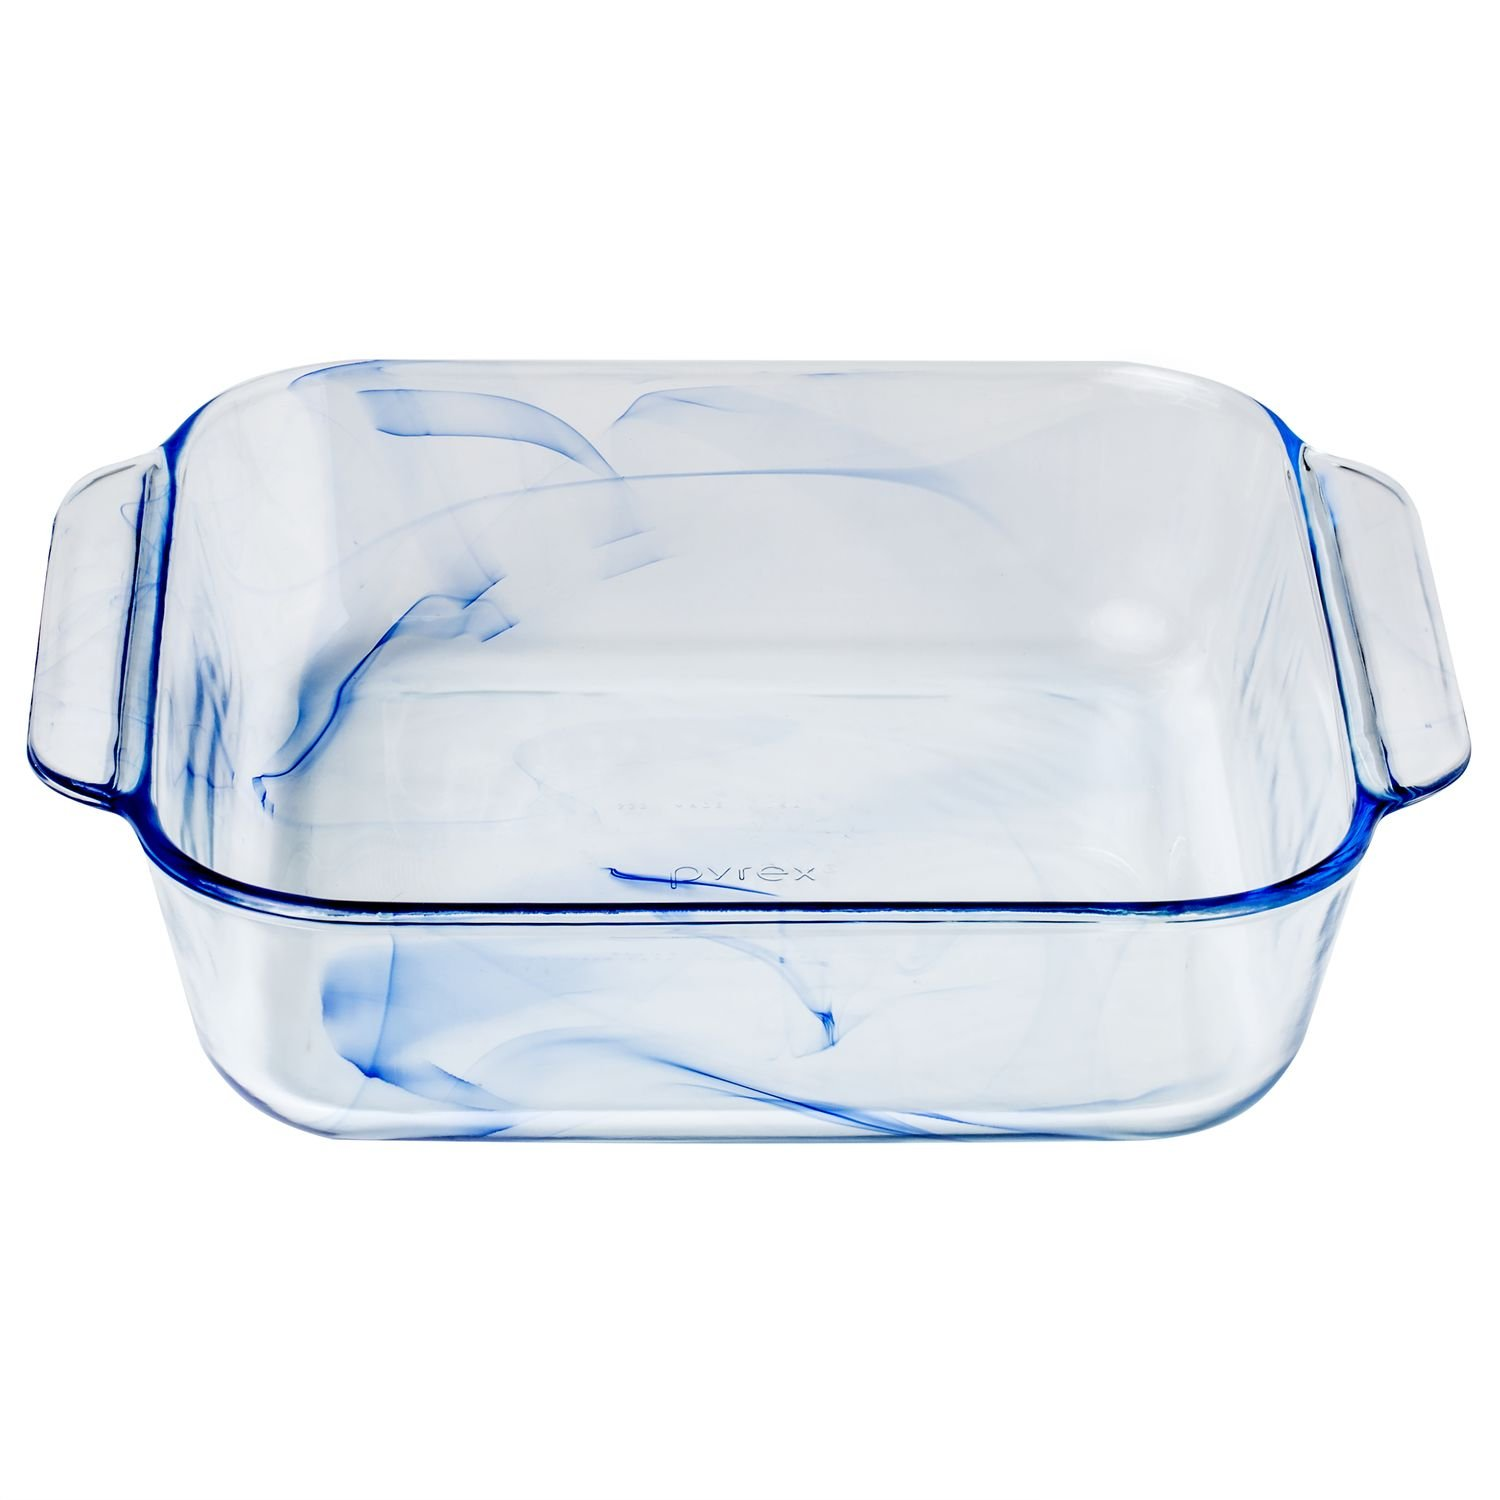 Pyrex, Pan Square Glass Blue, 1 Count by Pyrex